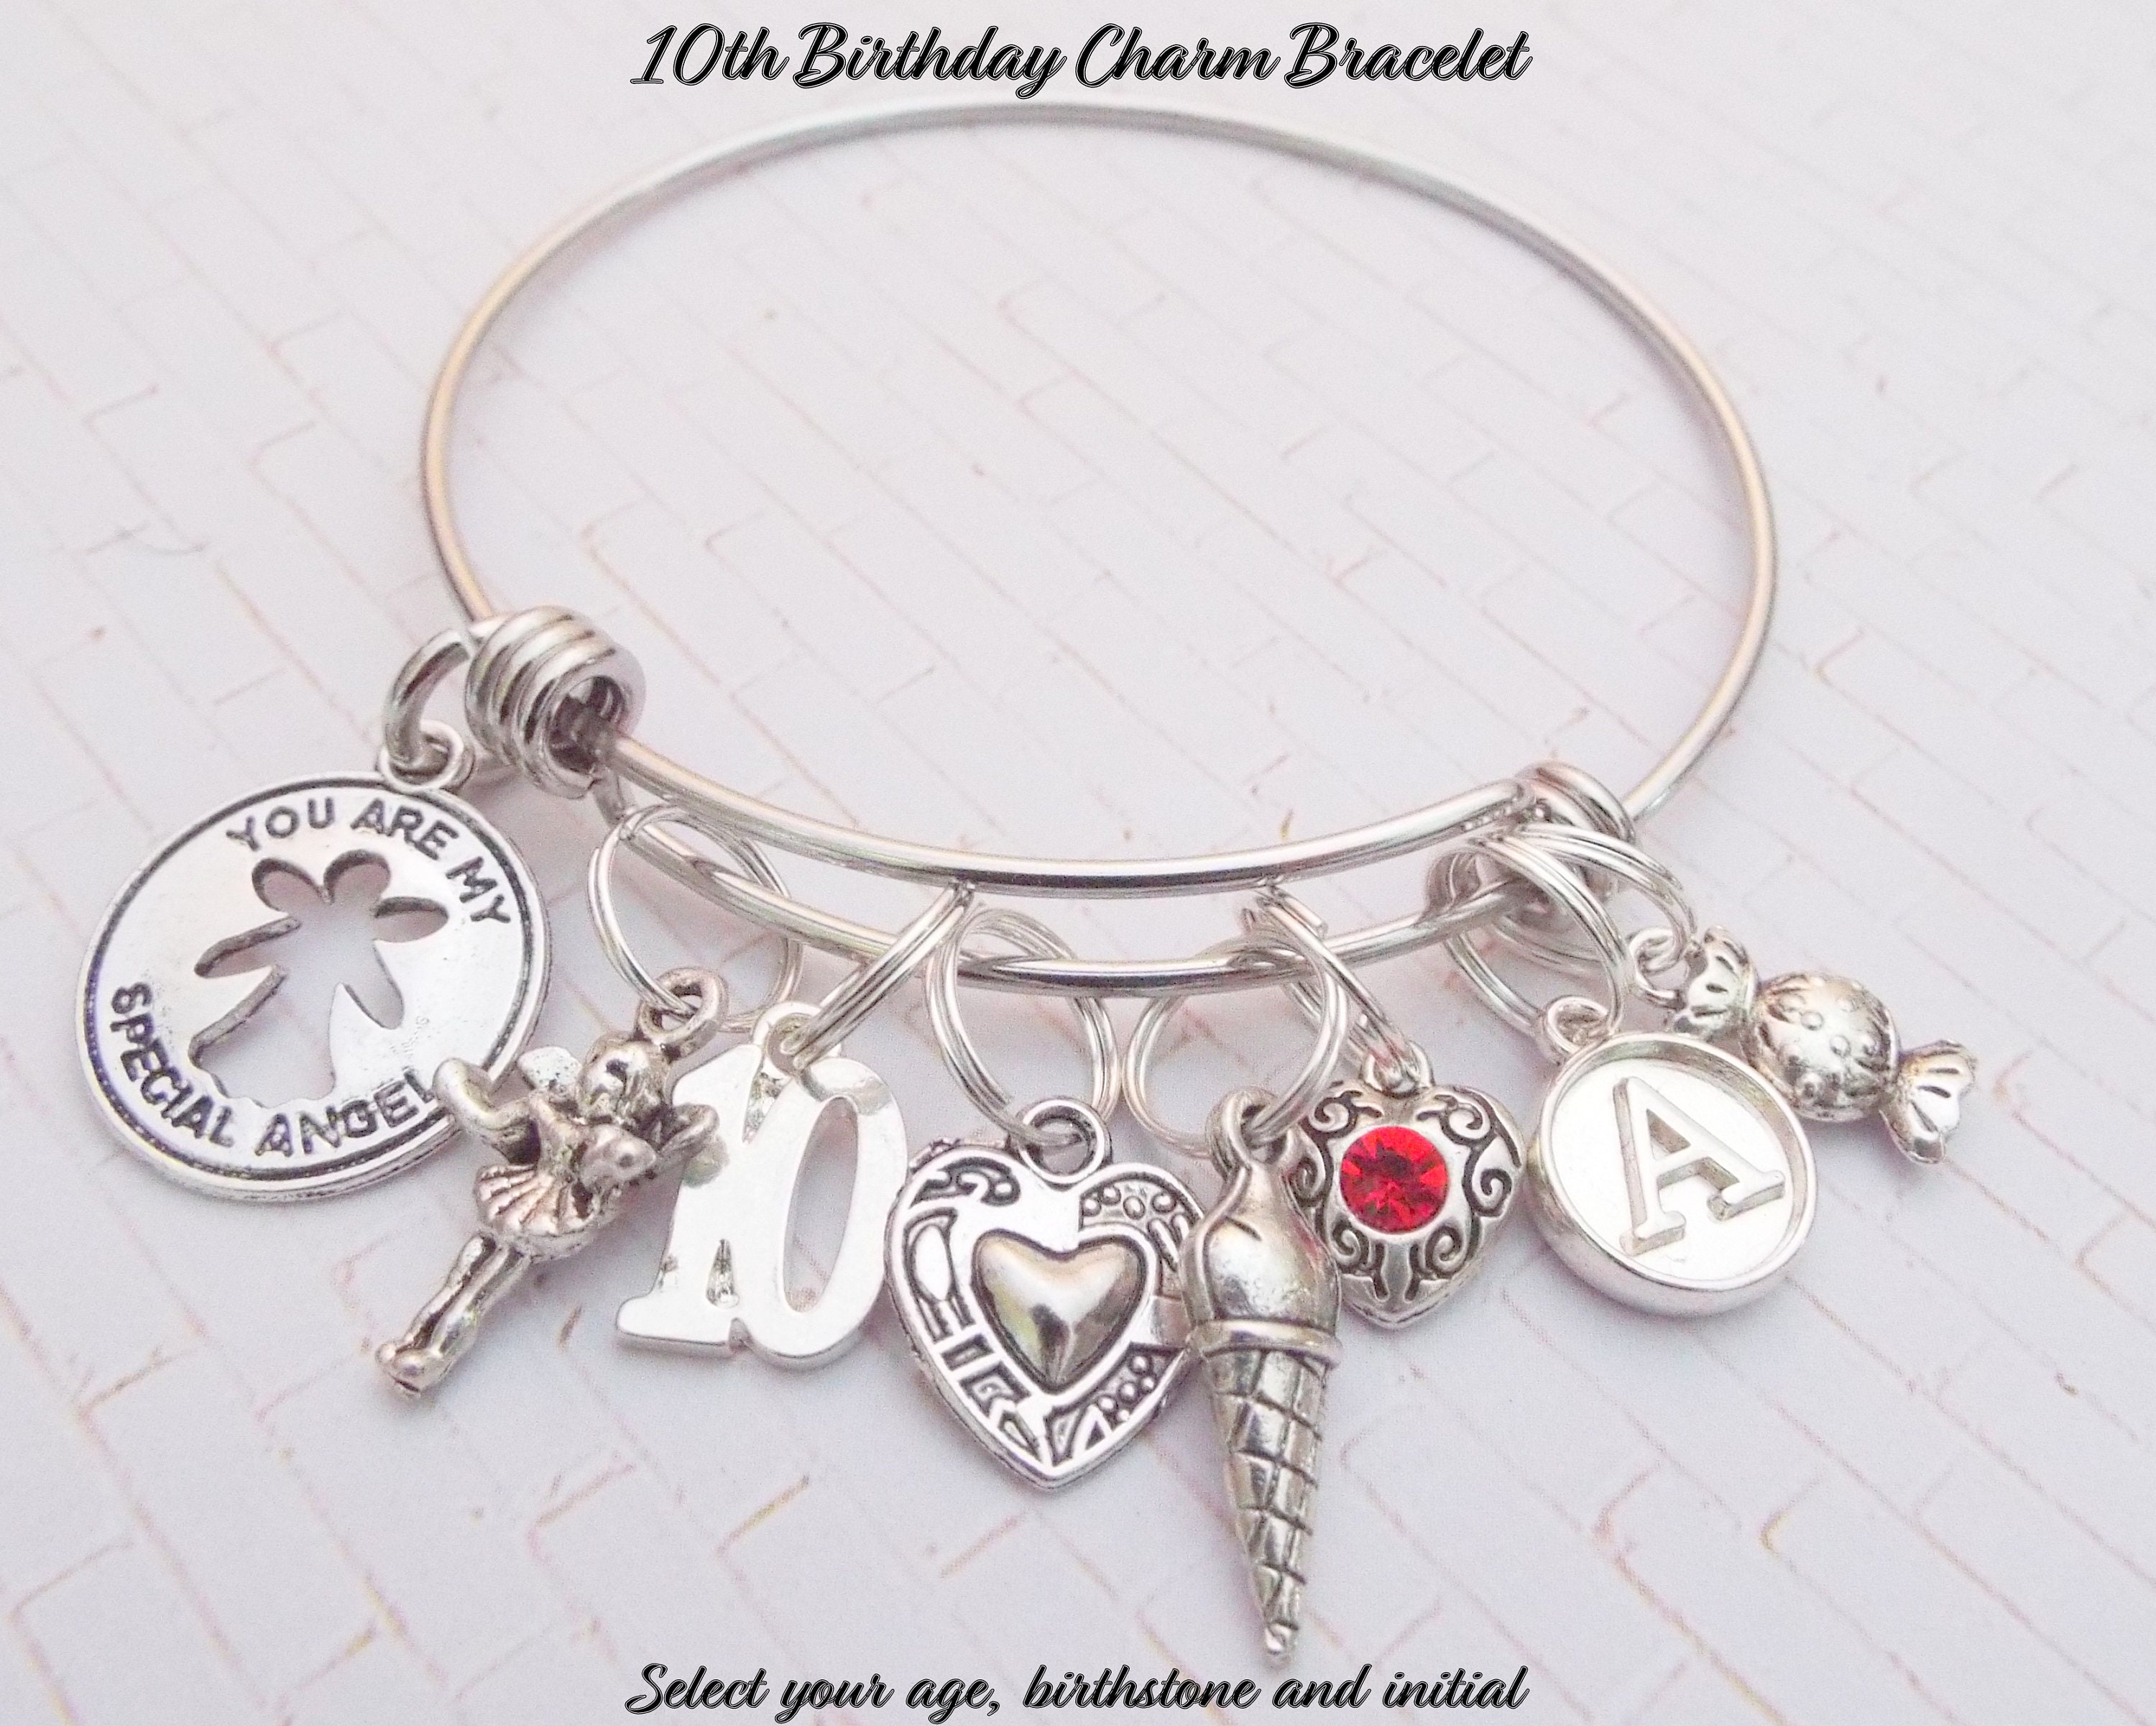 10th Birthday Girl Charm Bracelet 10 Year Old Daughter Gift Ideas Girls